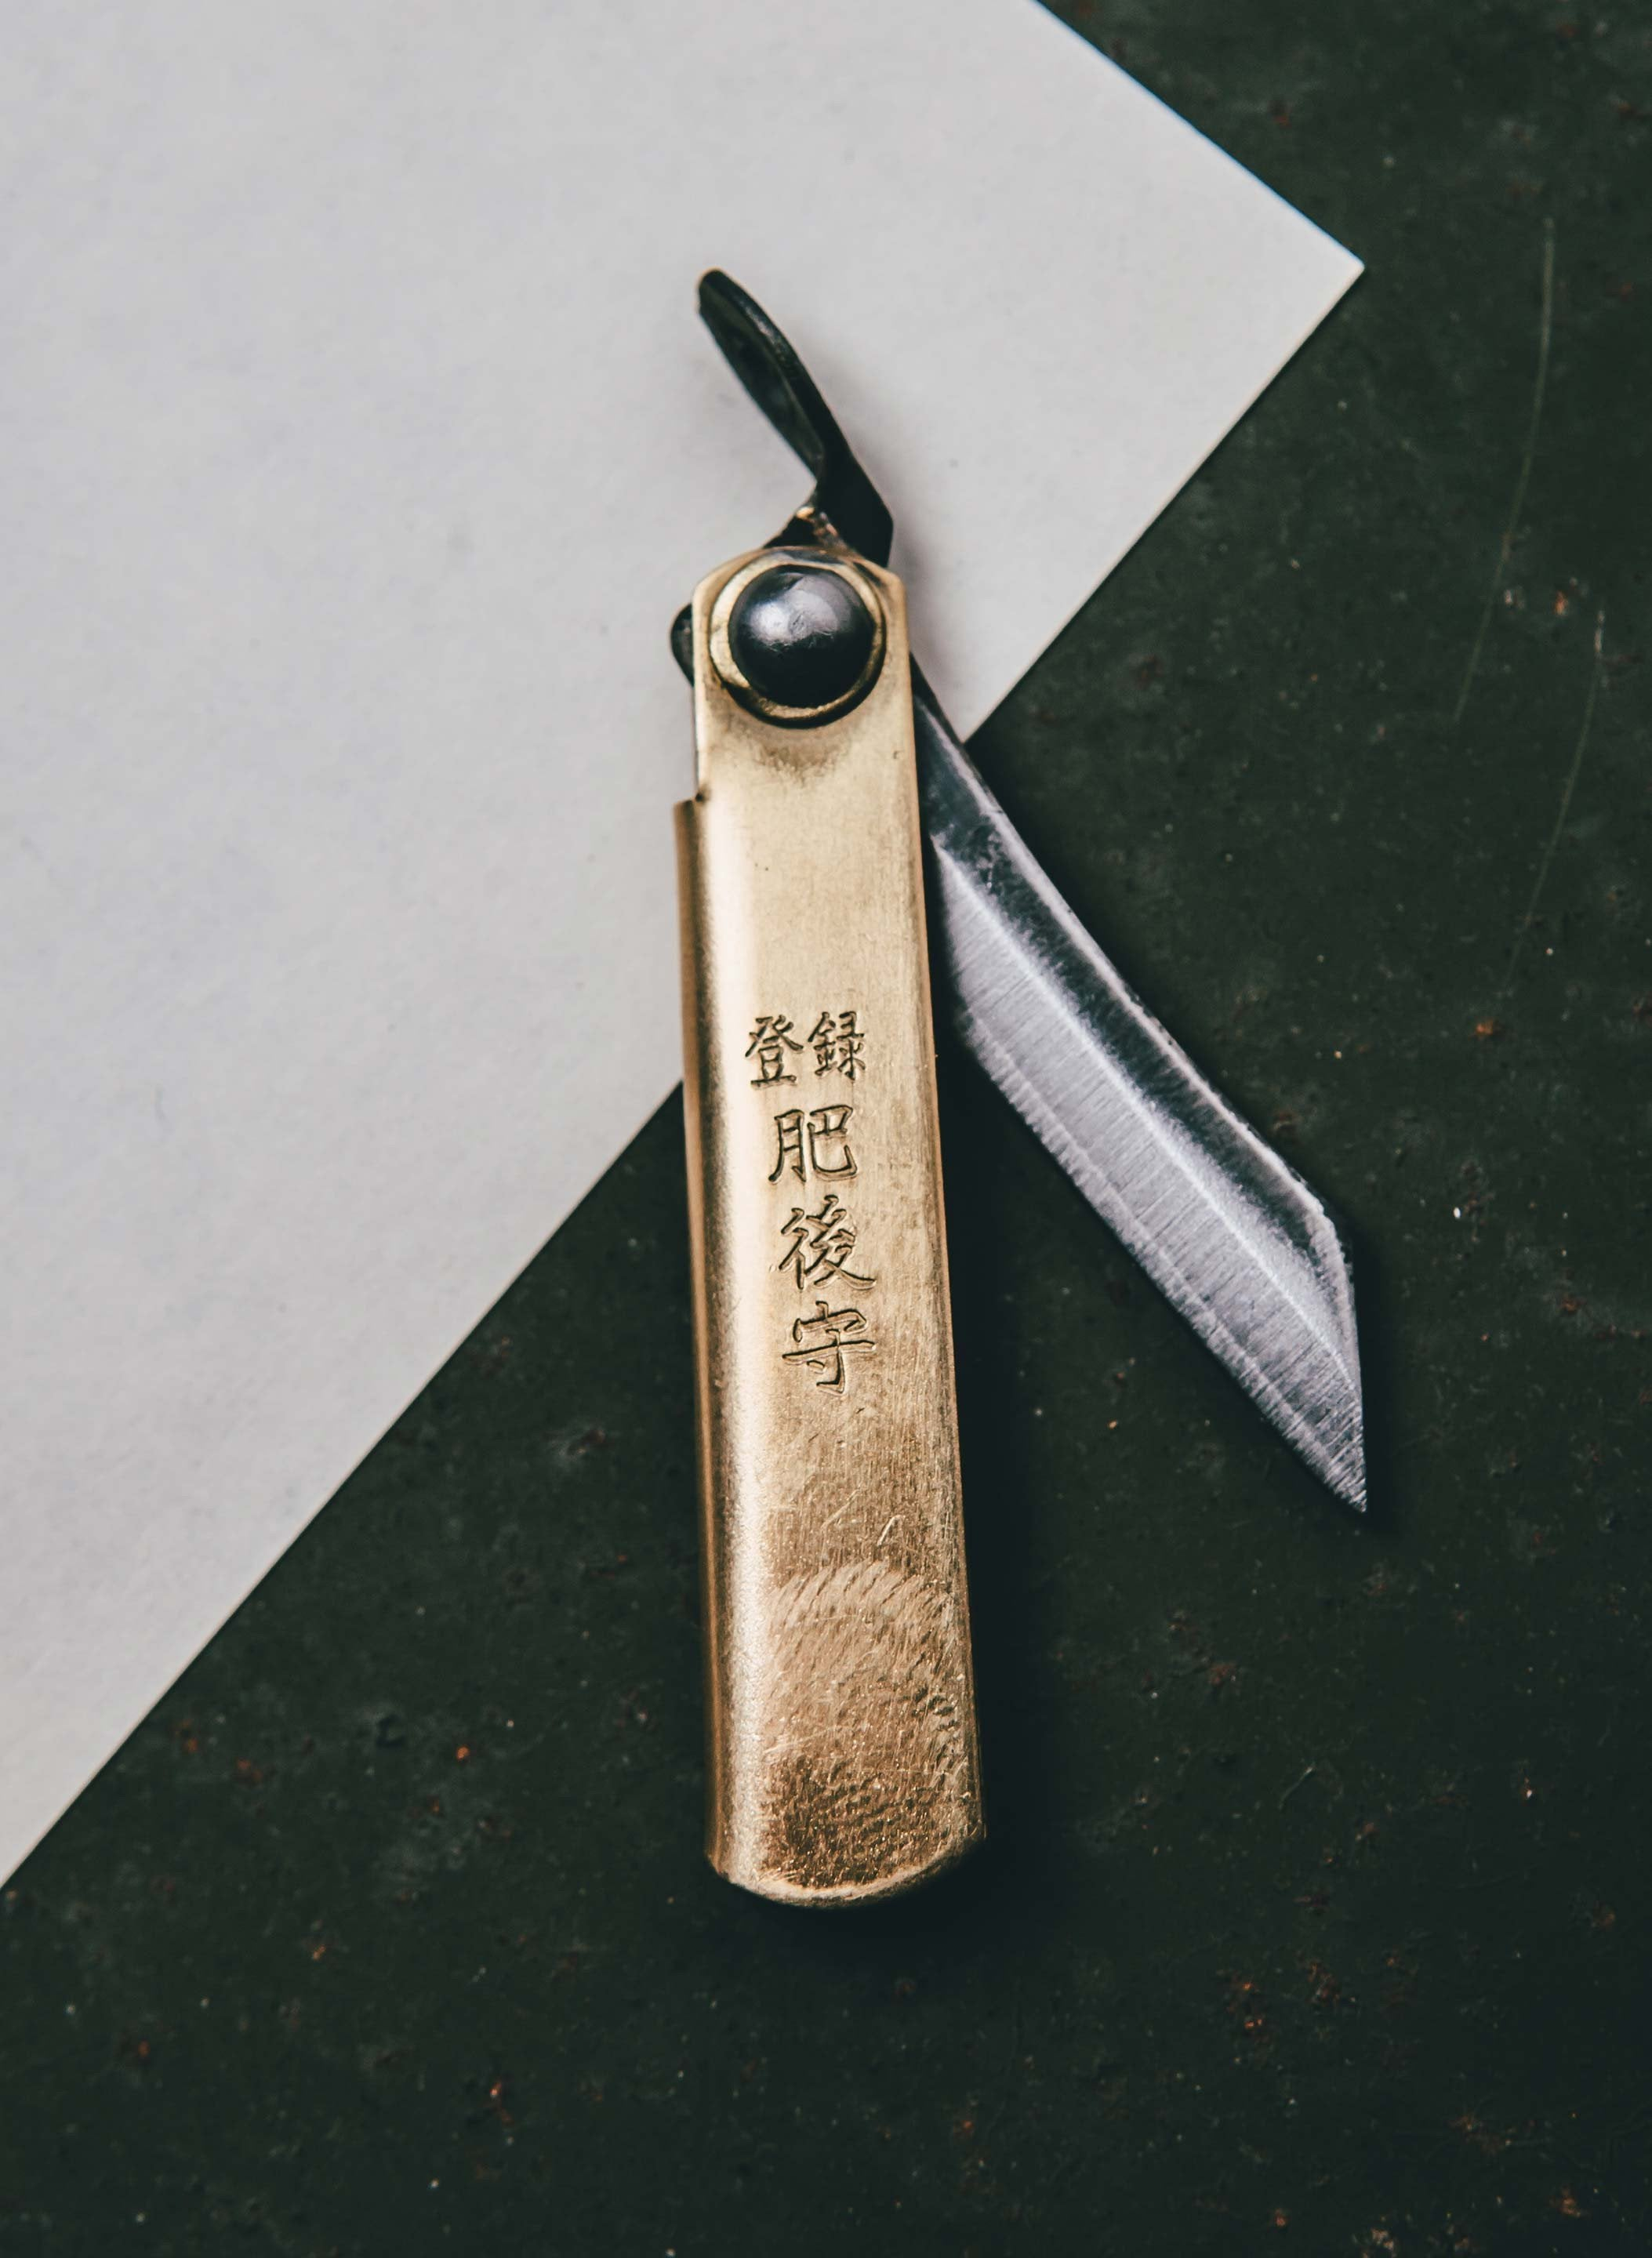 imogene + willie - higonokami folding knife